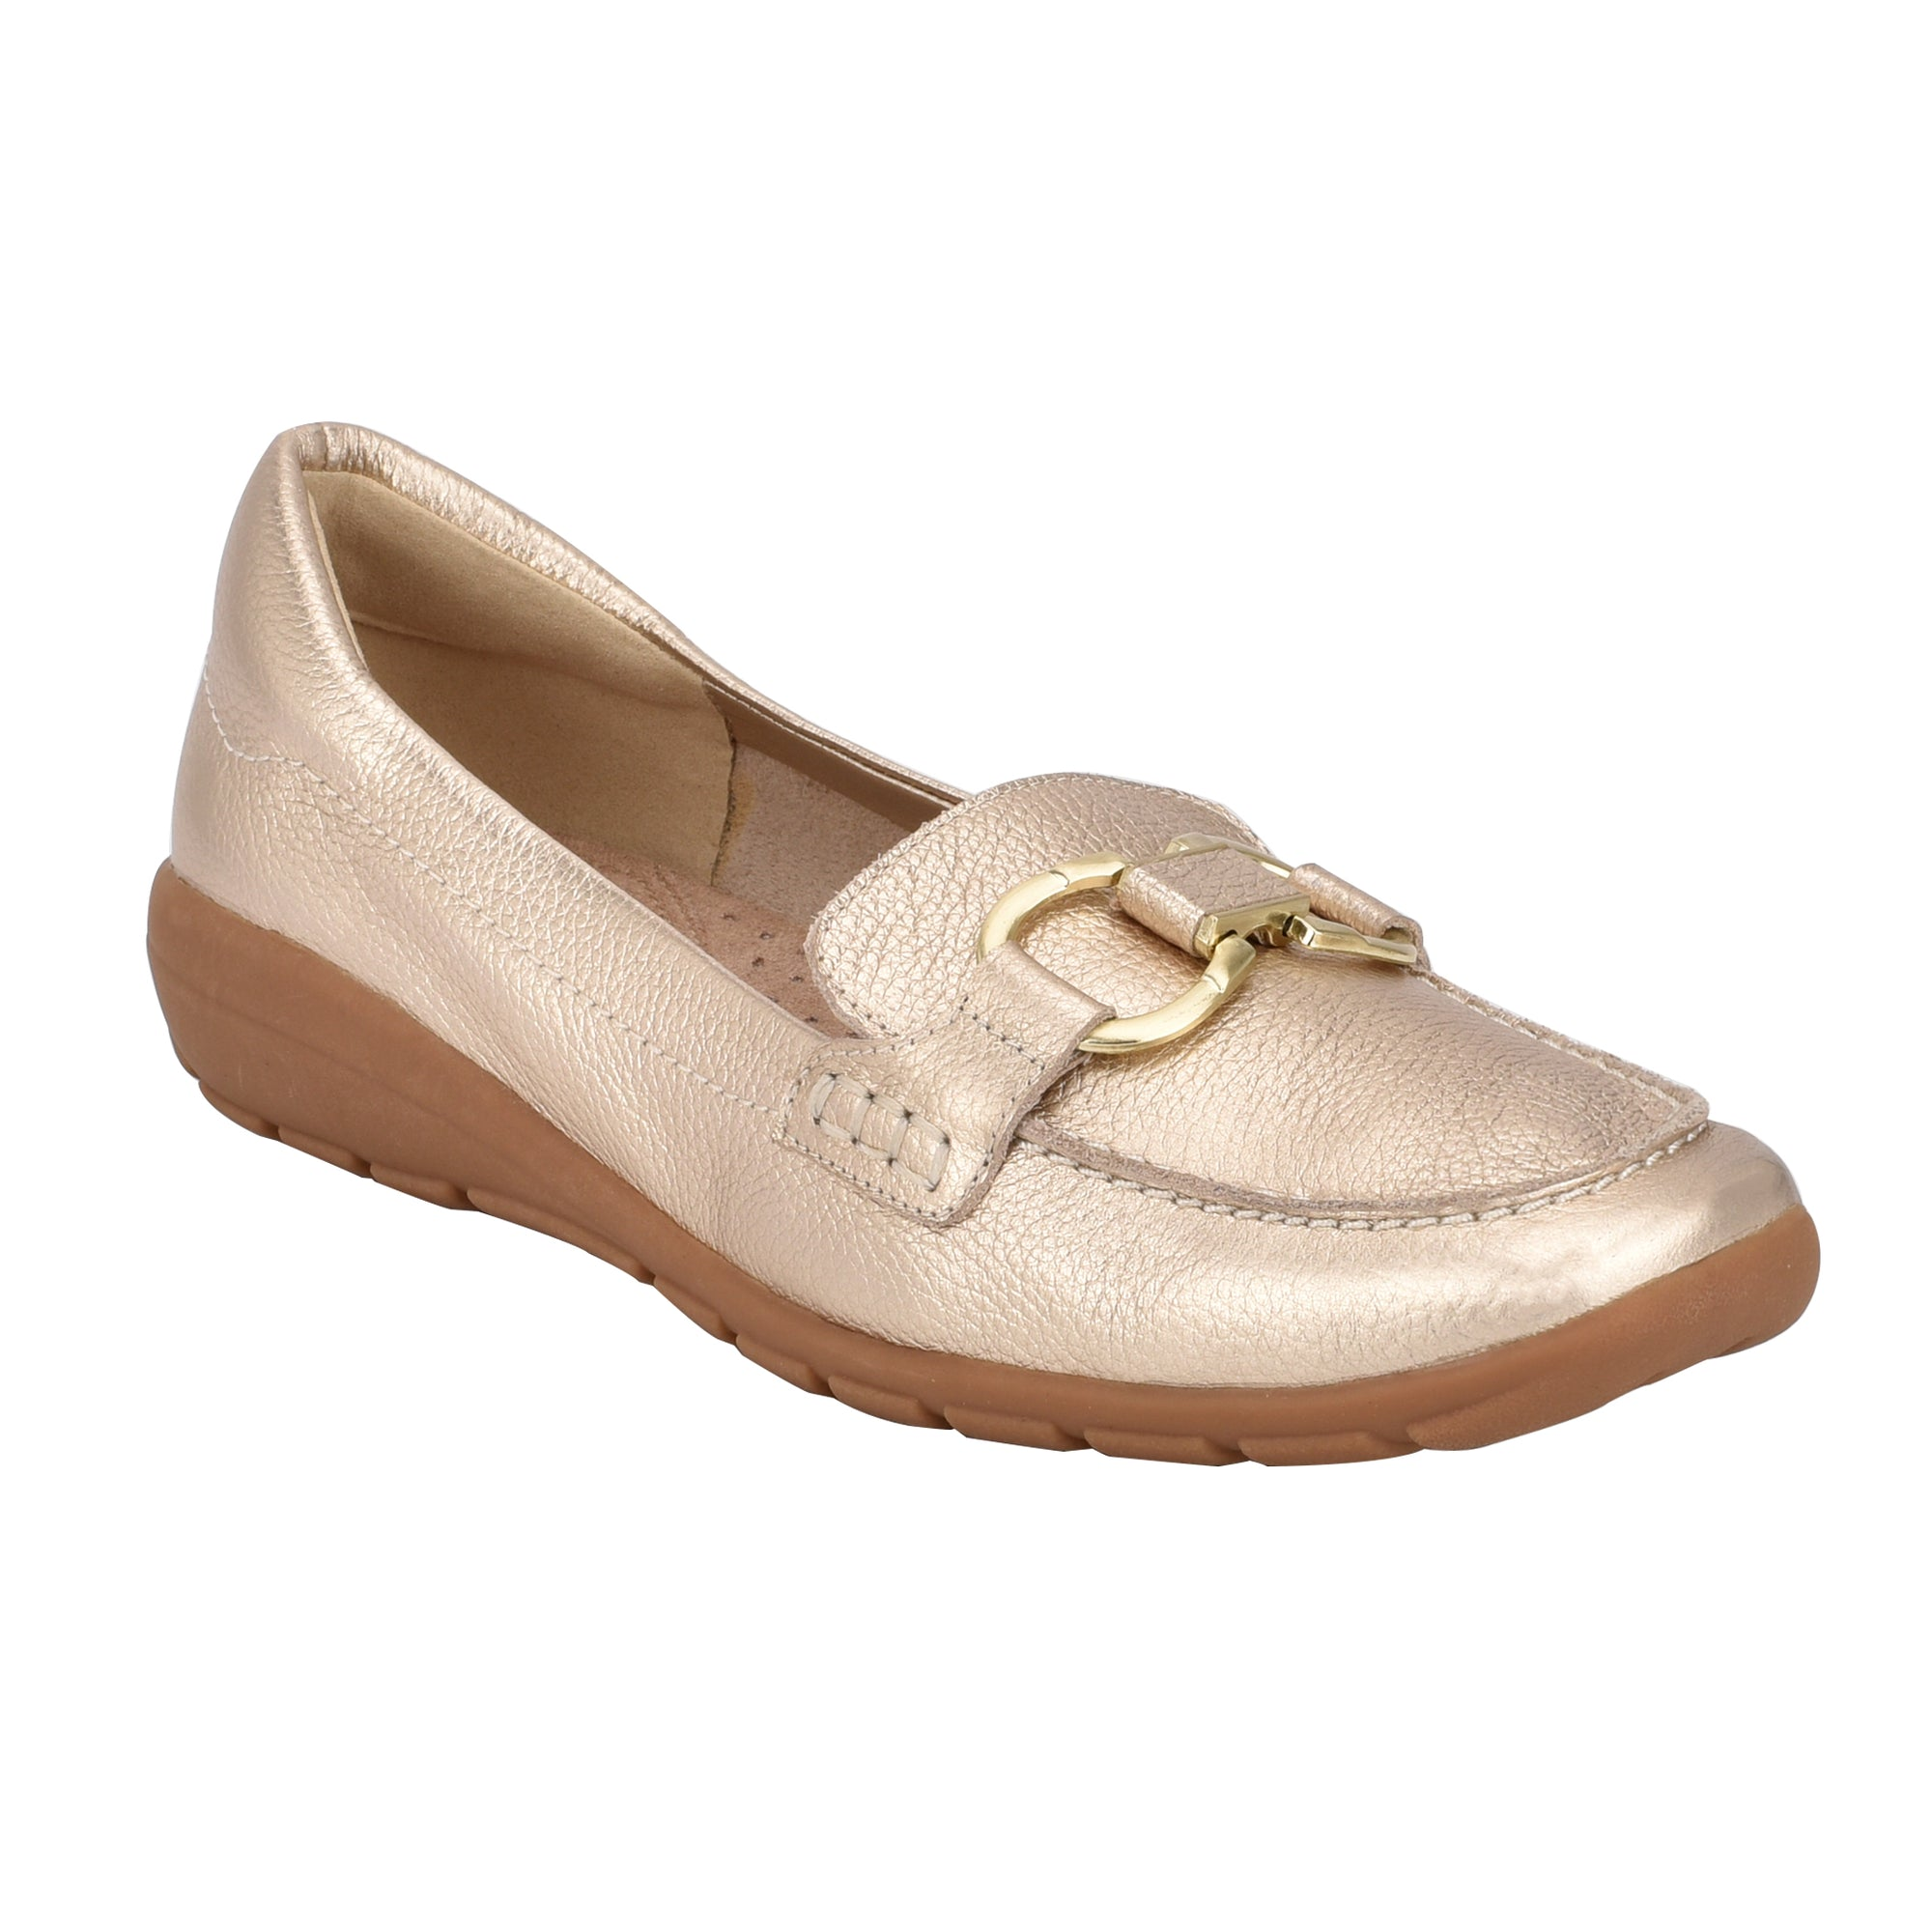 avienta-casual-loafers-in-gold-leather